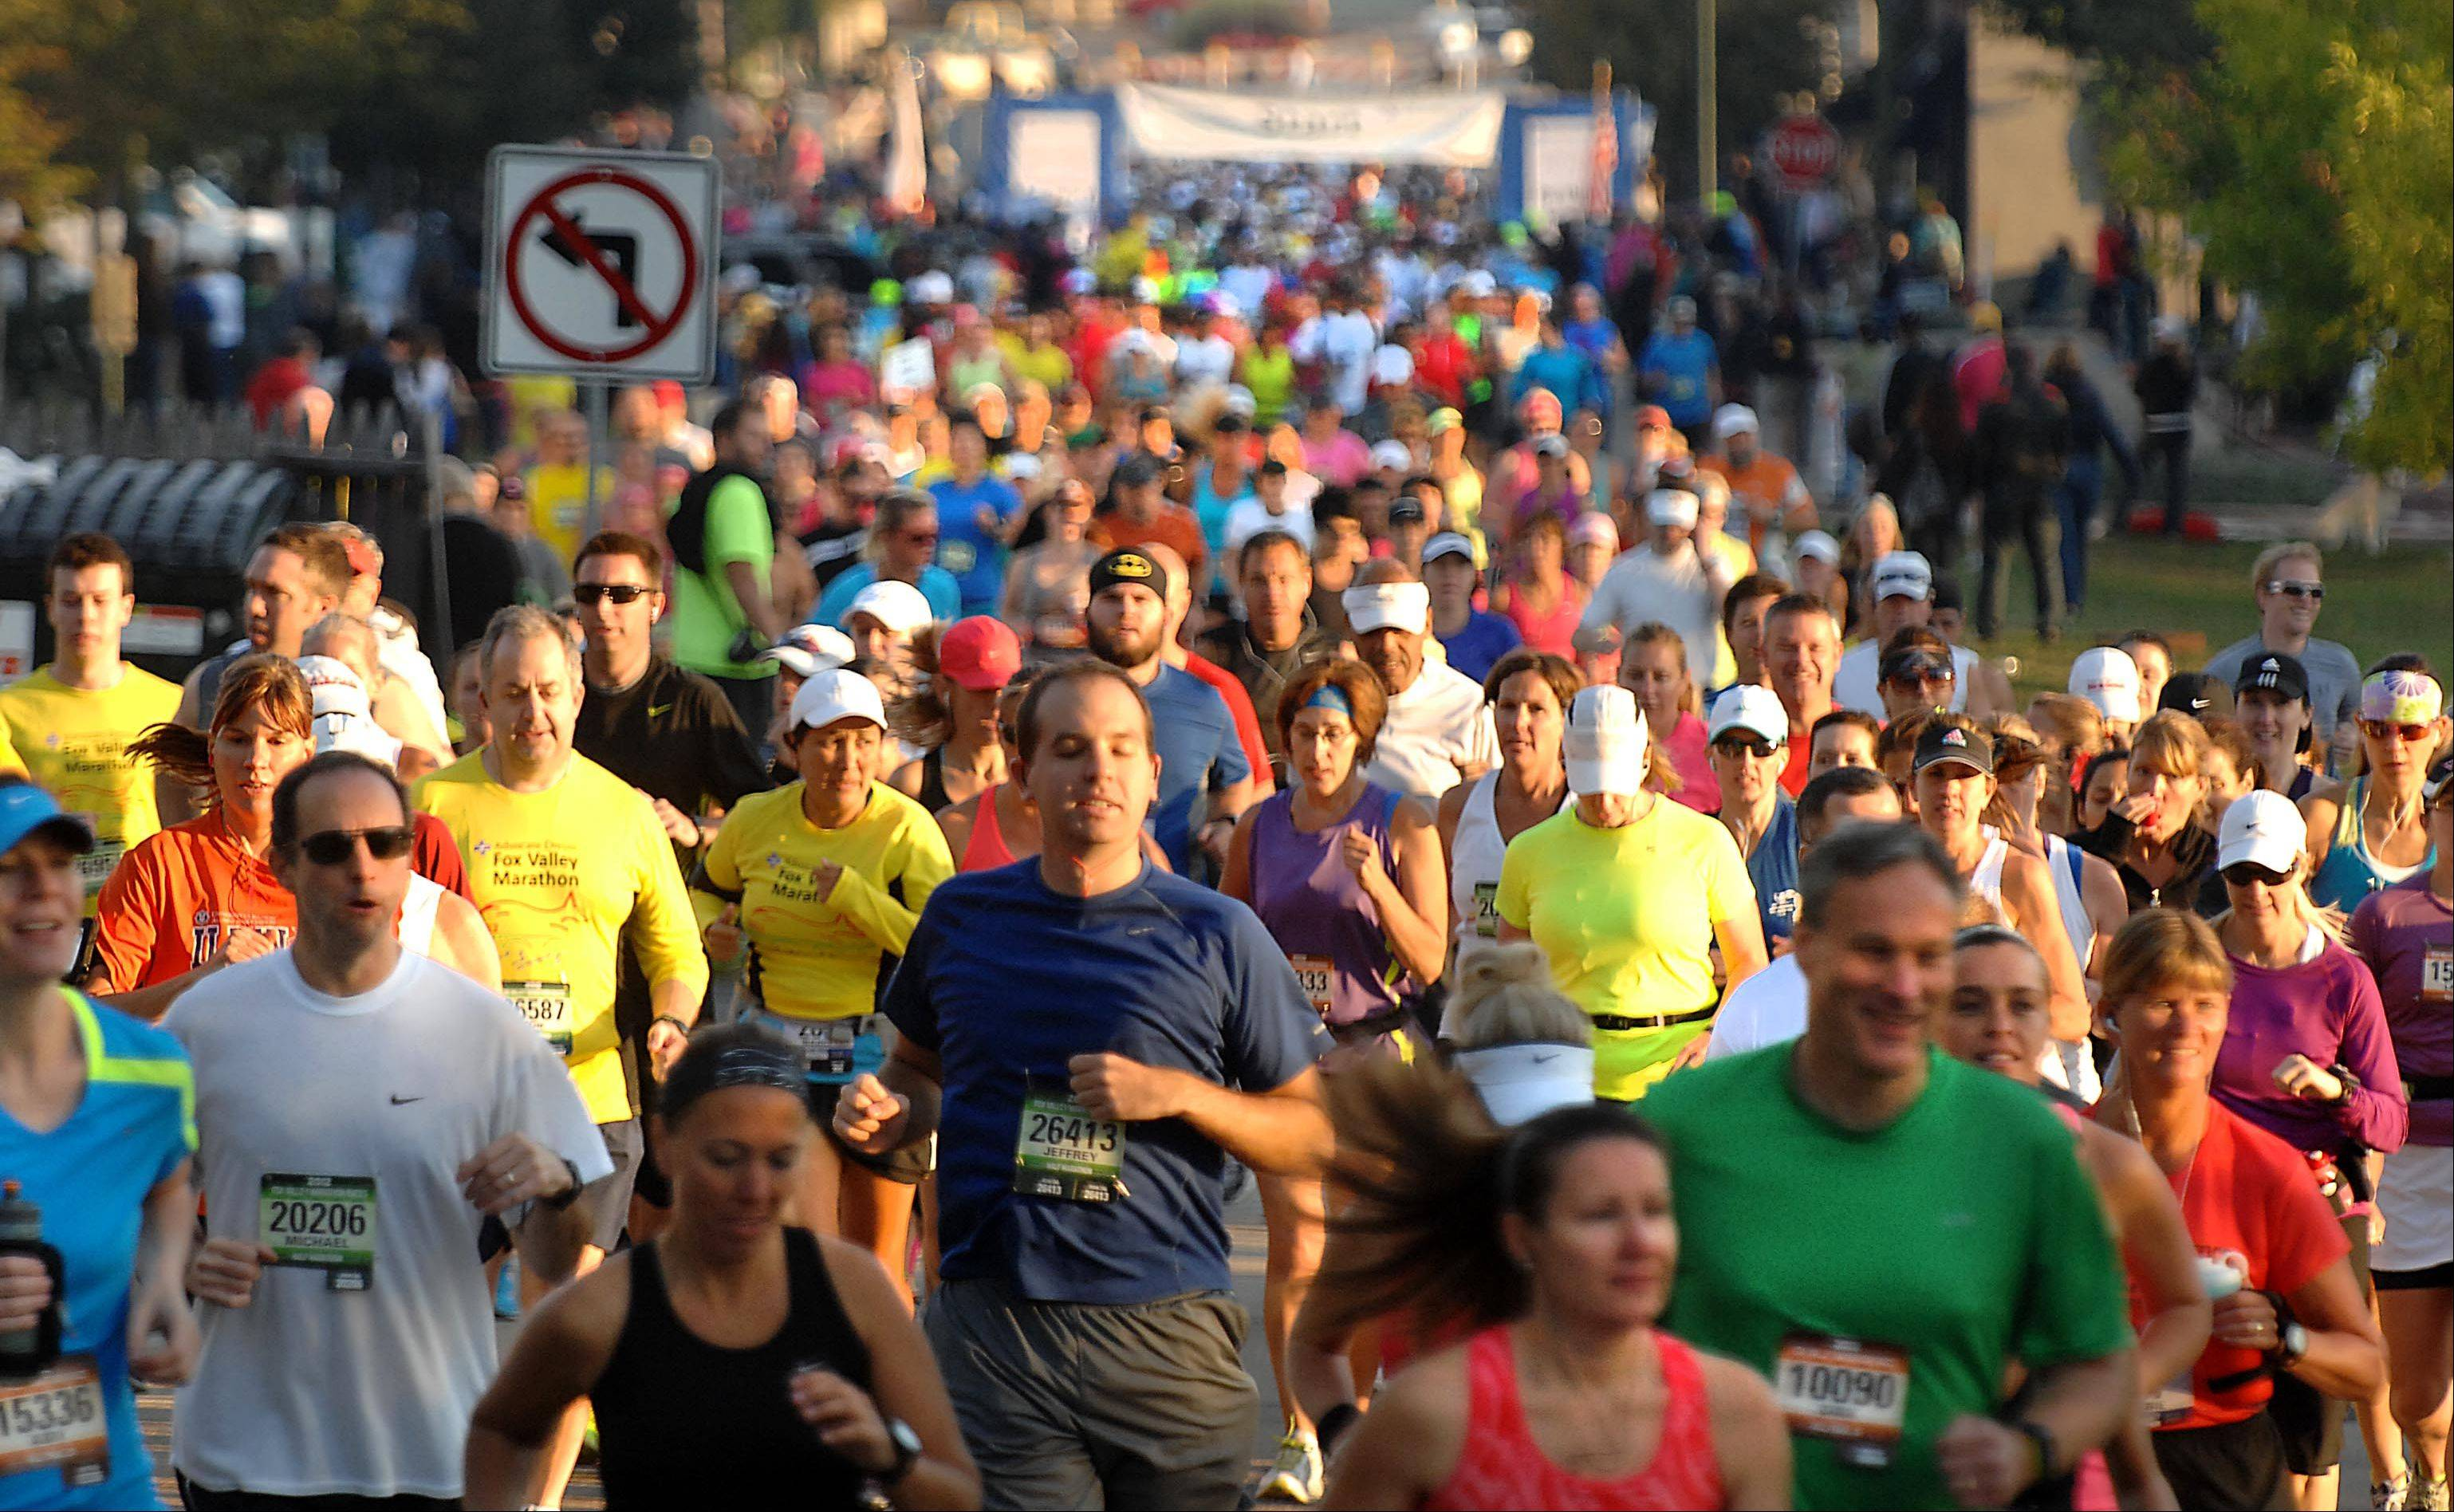 Hundreds of runners crowd First Street in St. Charles Sunday morning at the start of the Fox Valley Marathon. The top 30 finishers qualified for the prestigious Boston Marathon.